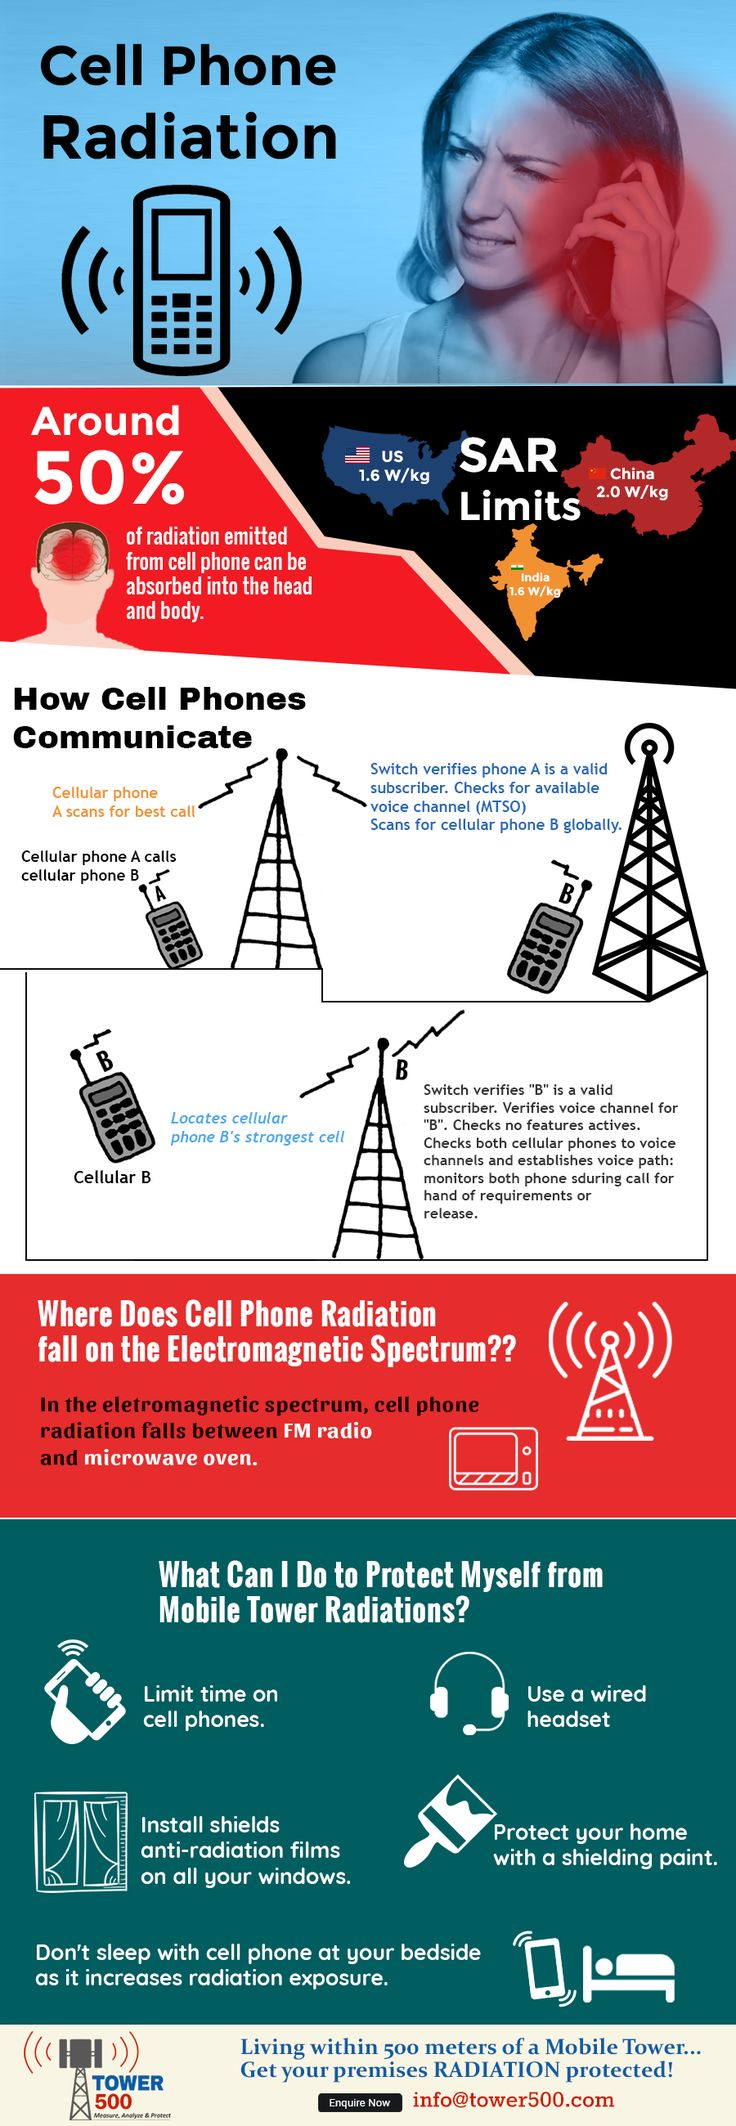 """Radiation from mobile phone towers is """"possibly carcinogenic to humans"""" and may cause glioma, a type of brain cancer. Towers are more dangerous than handsets because they emit greater-intensity radiation 24X7. So if you are living within 500 meters of a mobile tower than YOU SHOULD GET YOUR PREMISES AUDITED."""